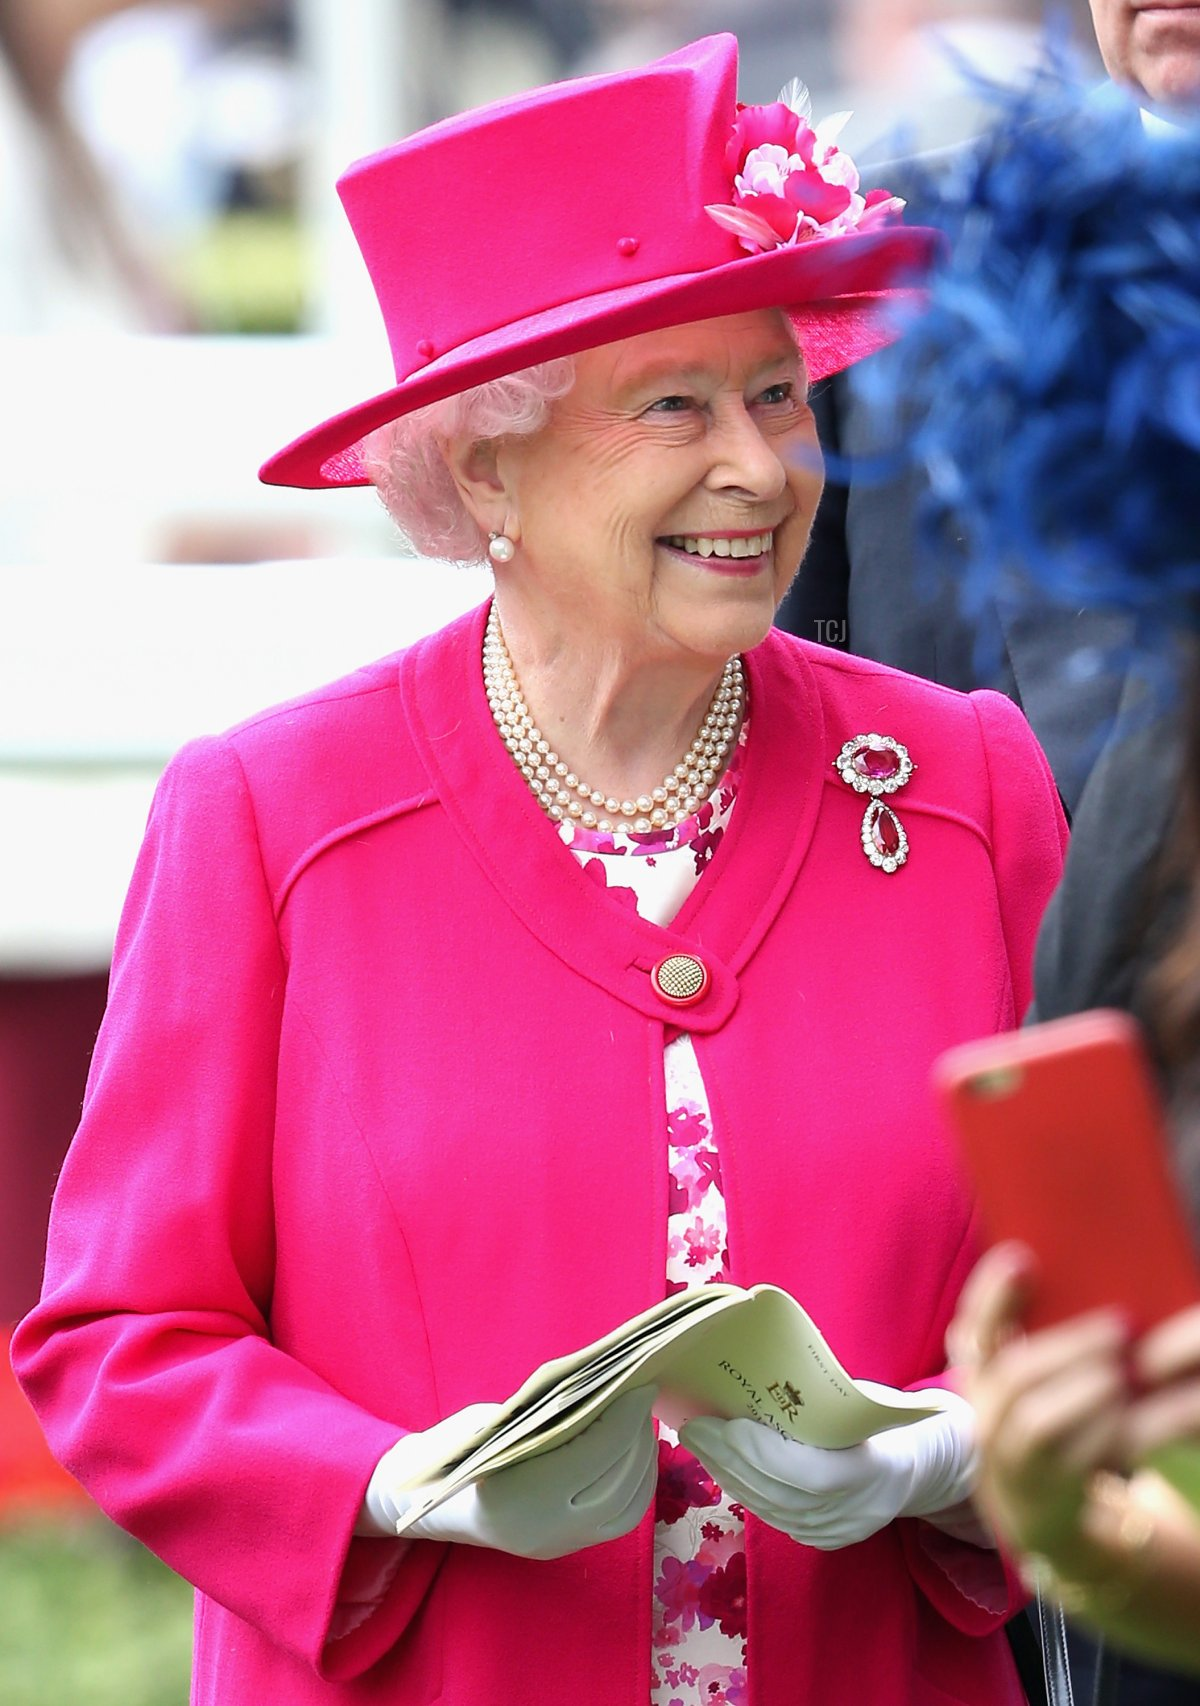 Queen Elizabeth II smiles in the parade ring on day 1 of Royal Ascot at Ascot Racecourse on June 16, 2015 in Ascot, England